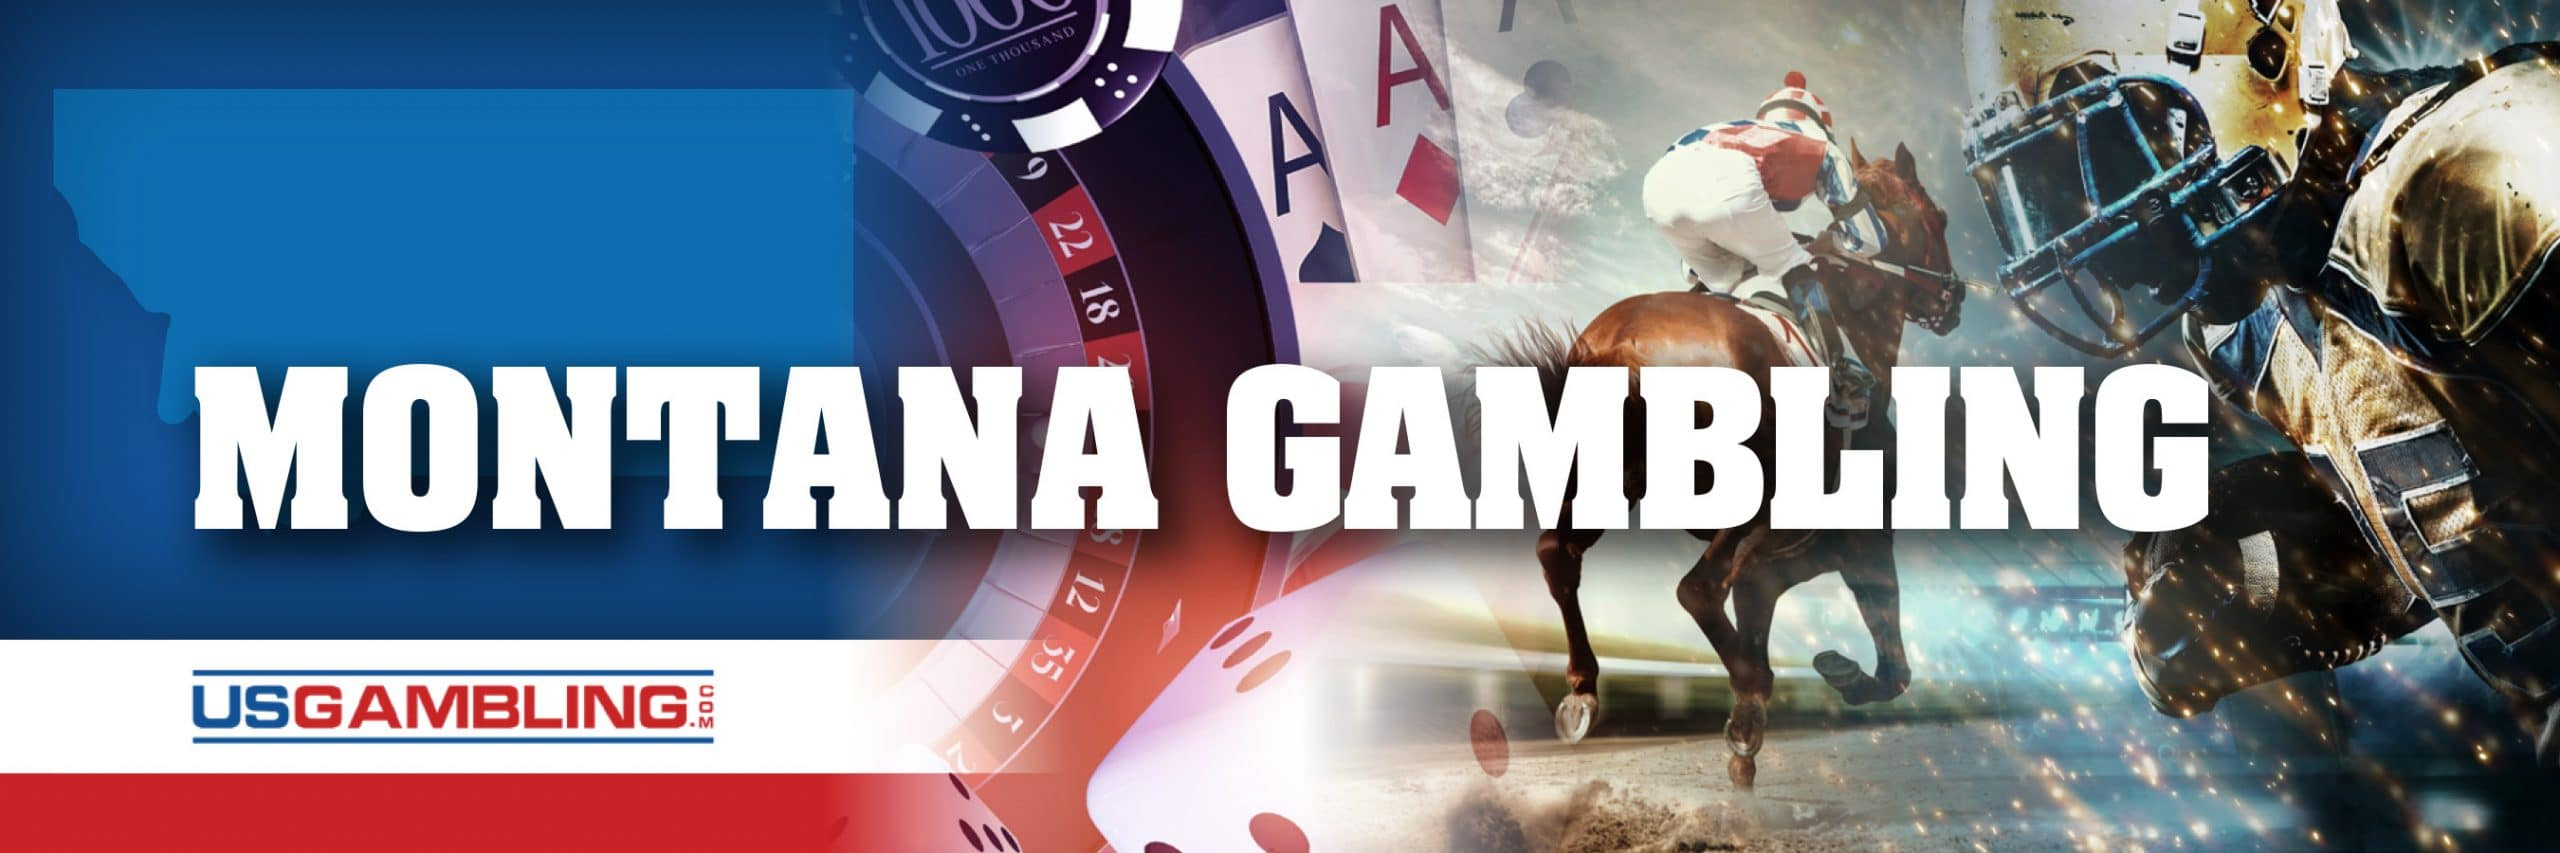 Legal Montana Gambling